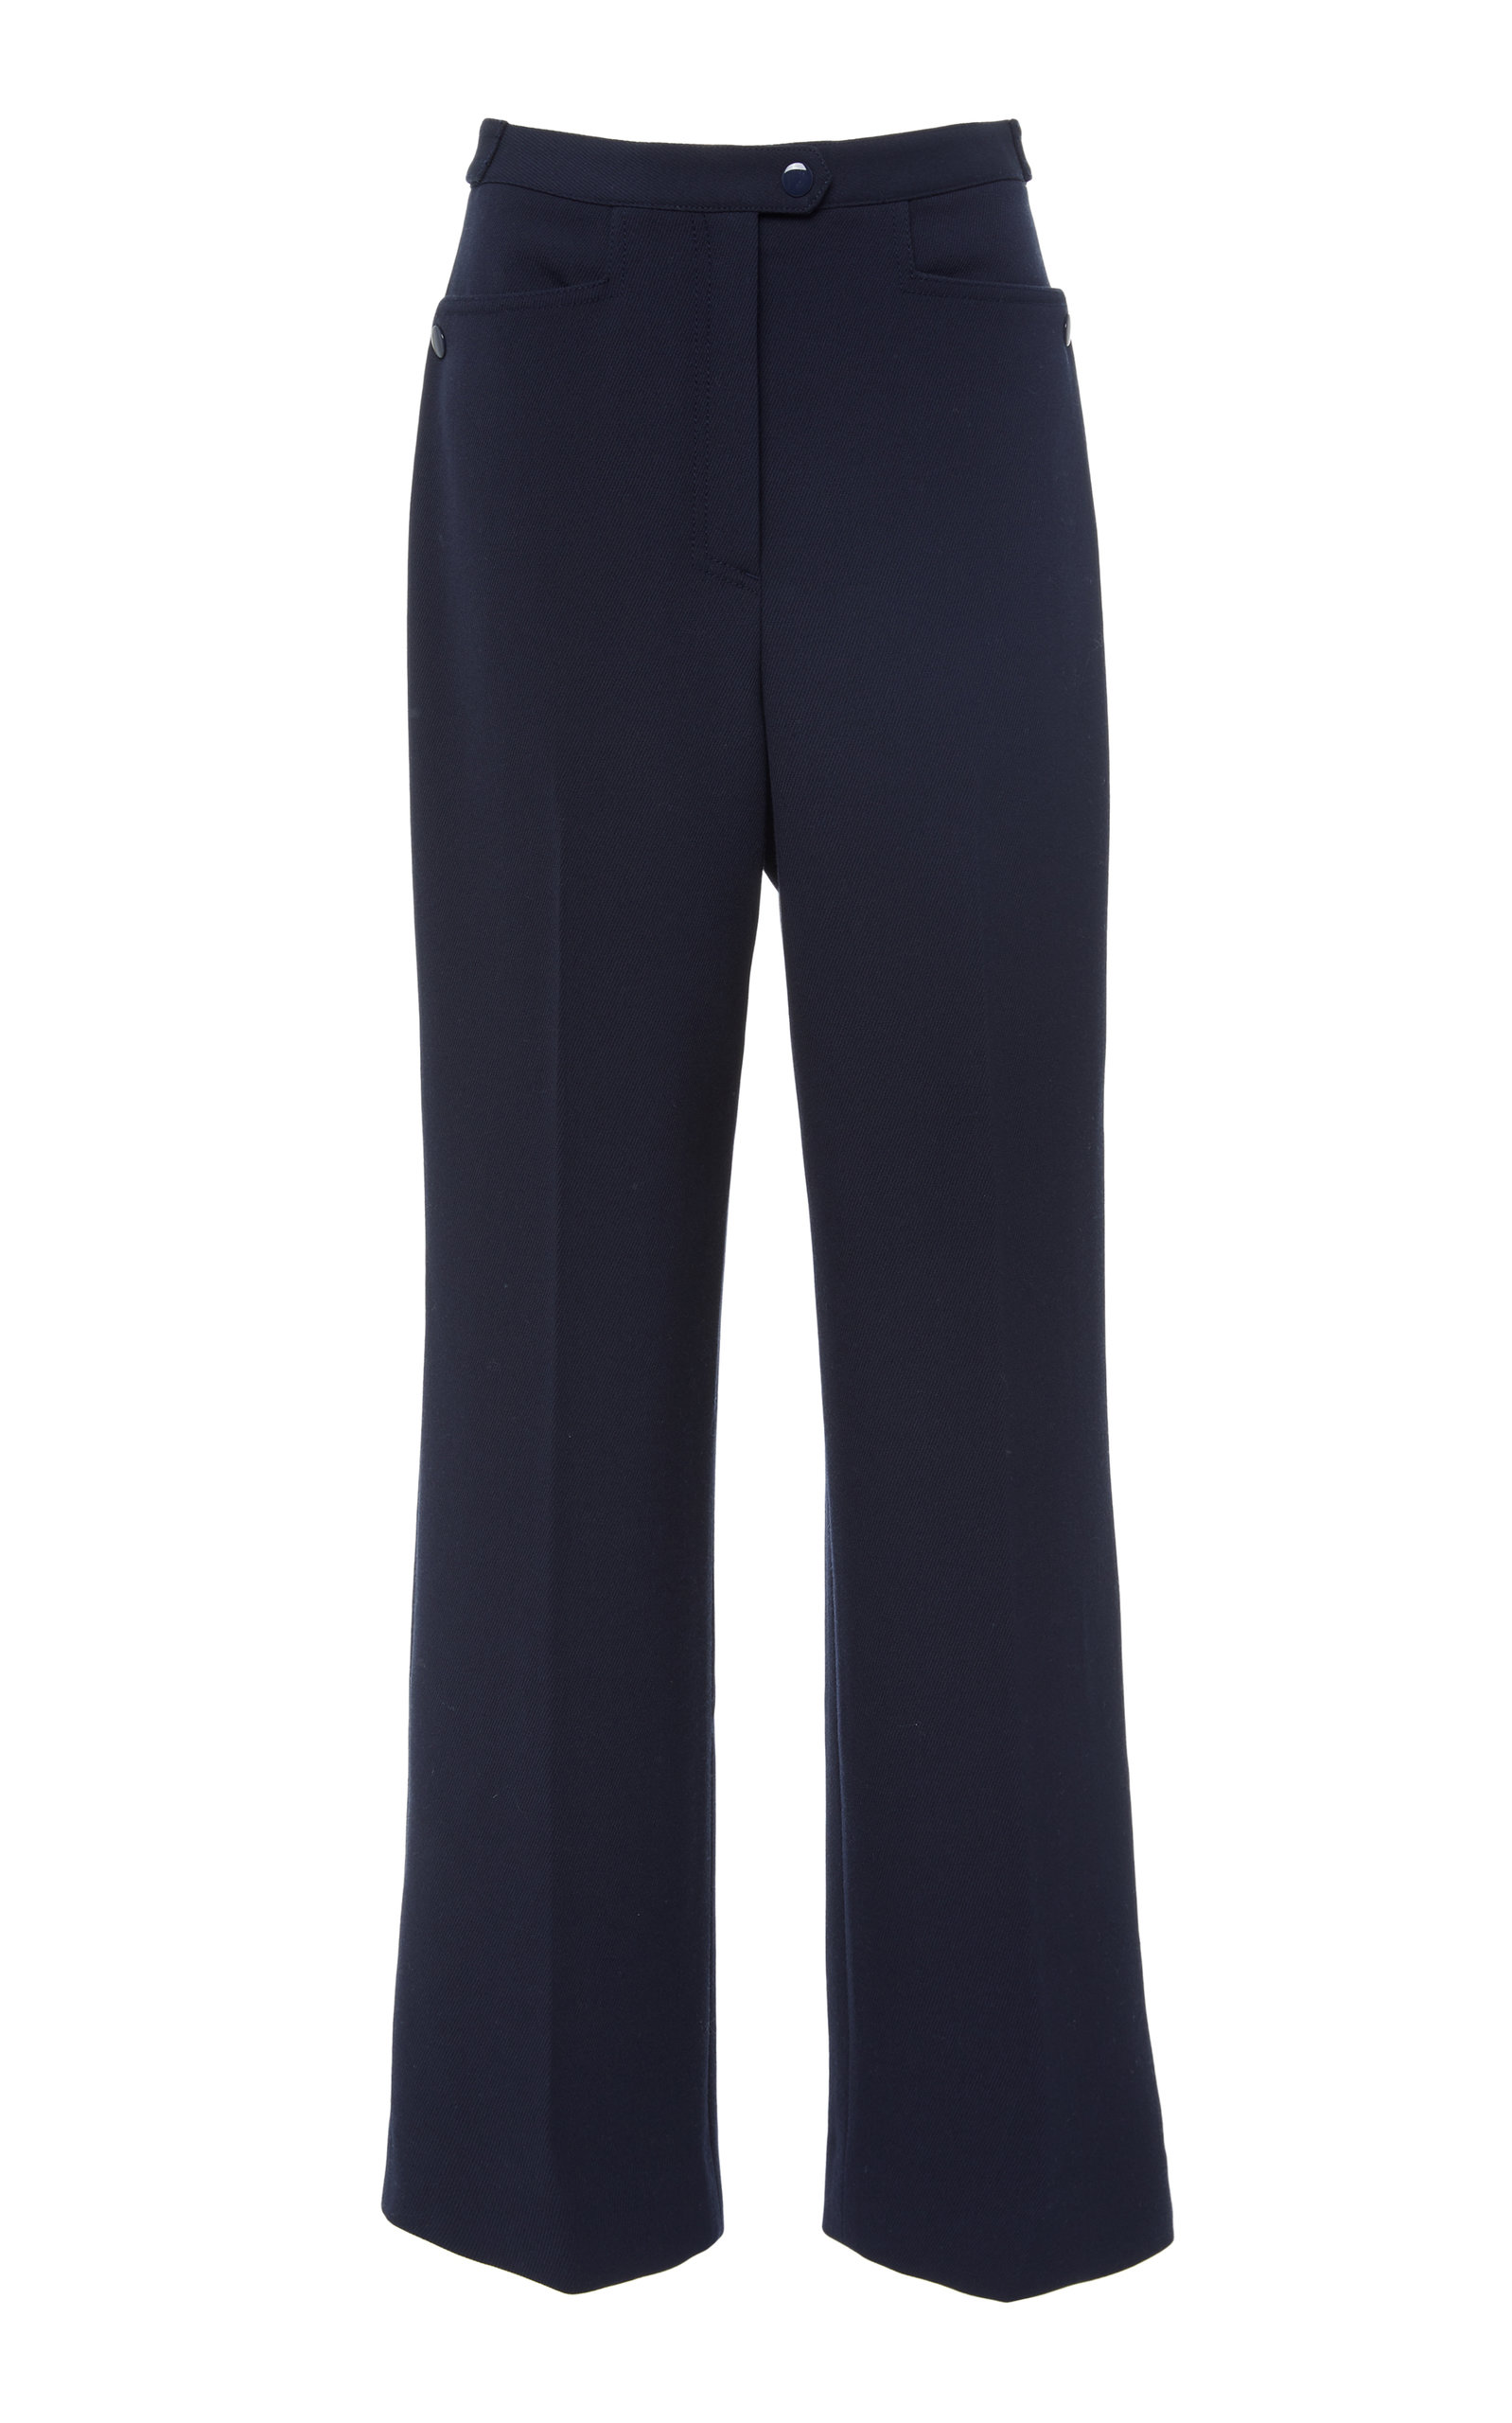 TORY BURCH | Tory Burch Tricotine Pants | Goxip